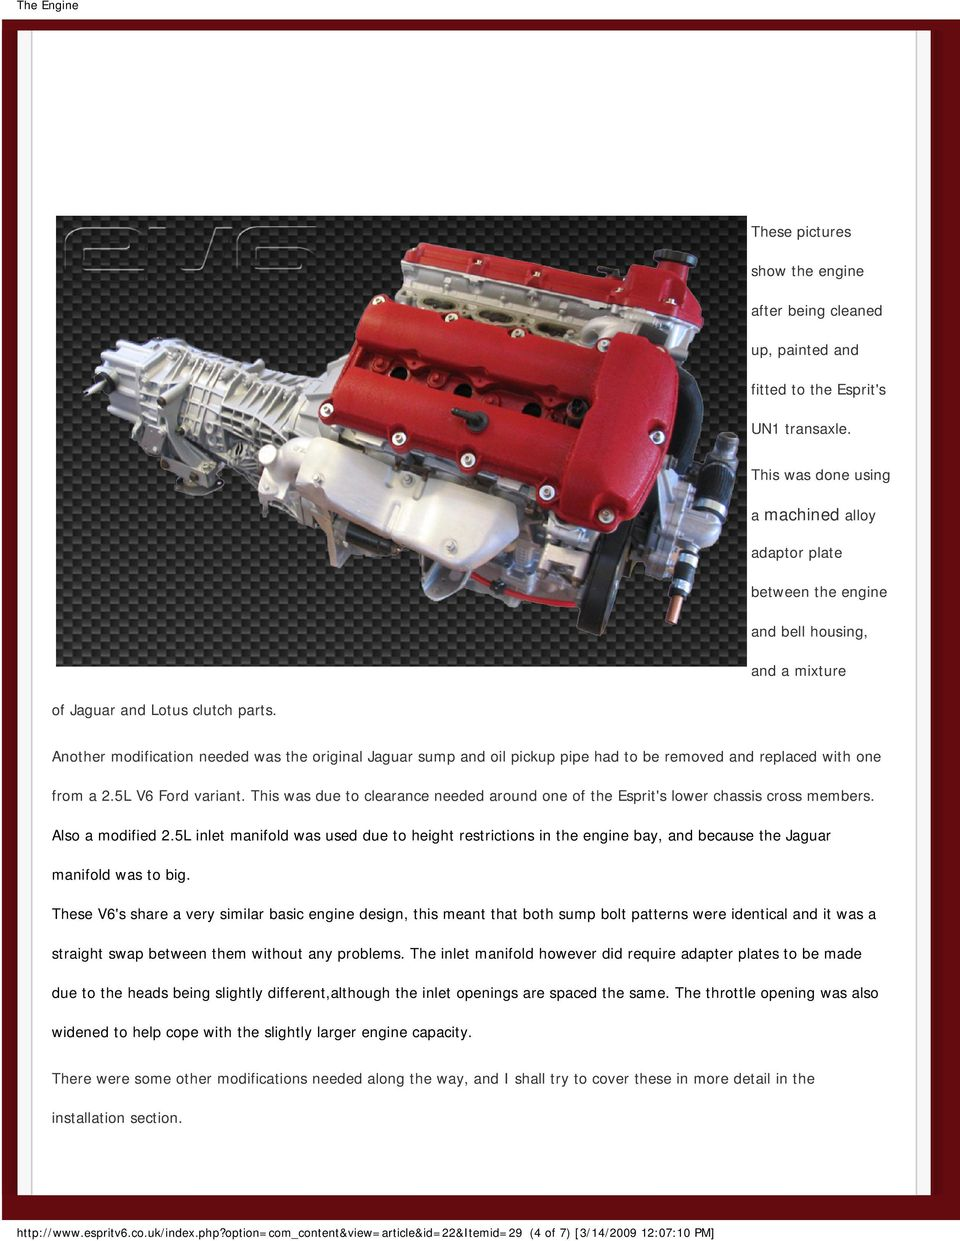 V6 Duratec Jaguar Aj Engine 30 The Pdf Pathfinder 3 5l Diagram Another Modification Needed Was Original Sump And Oil Pickup Pipe Had To Be Removed